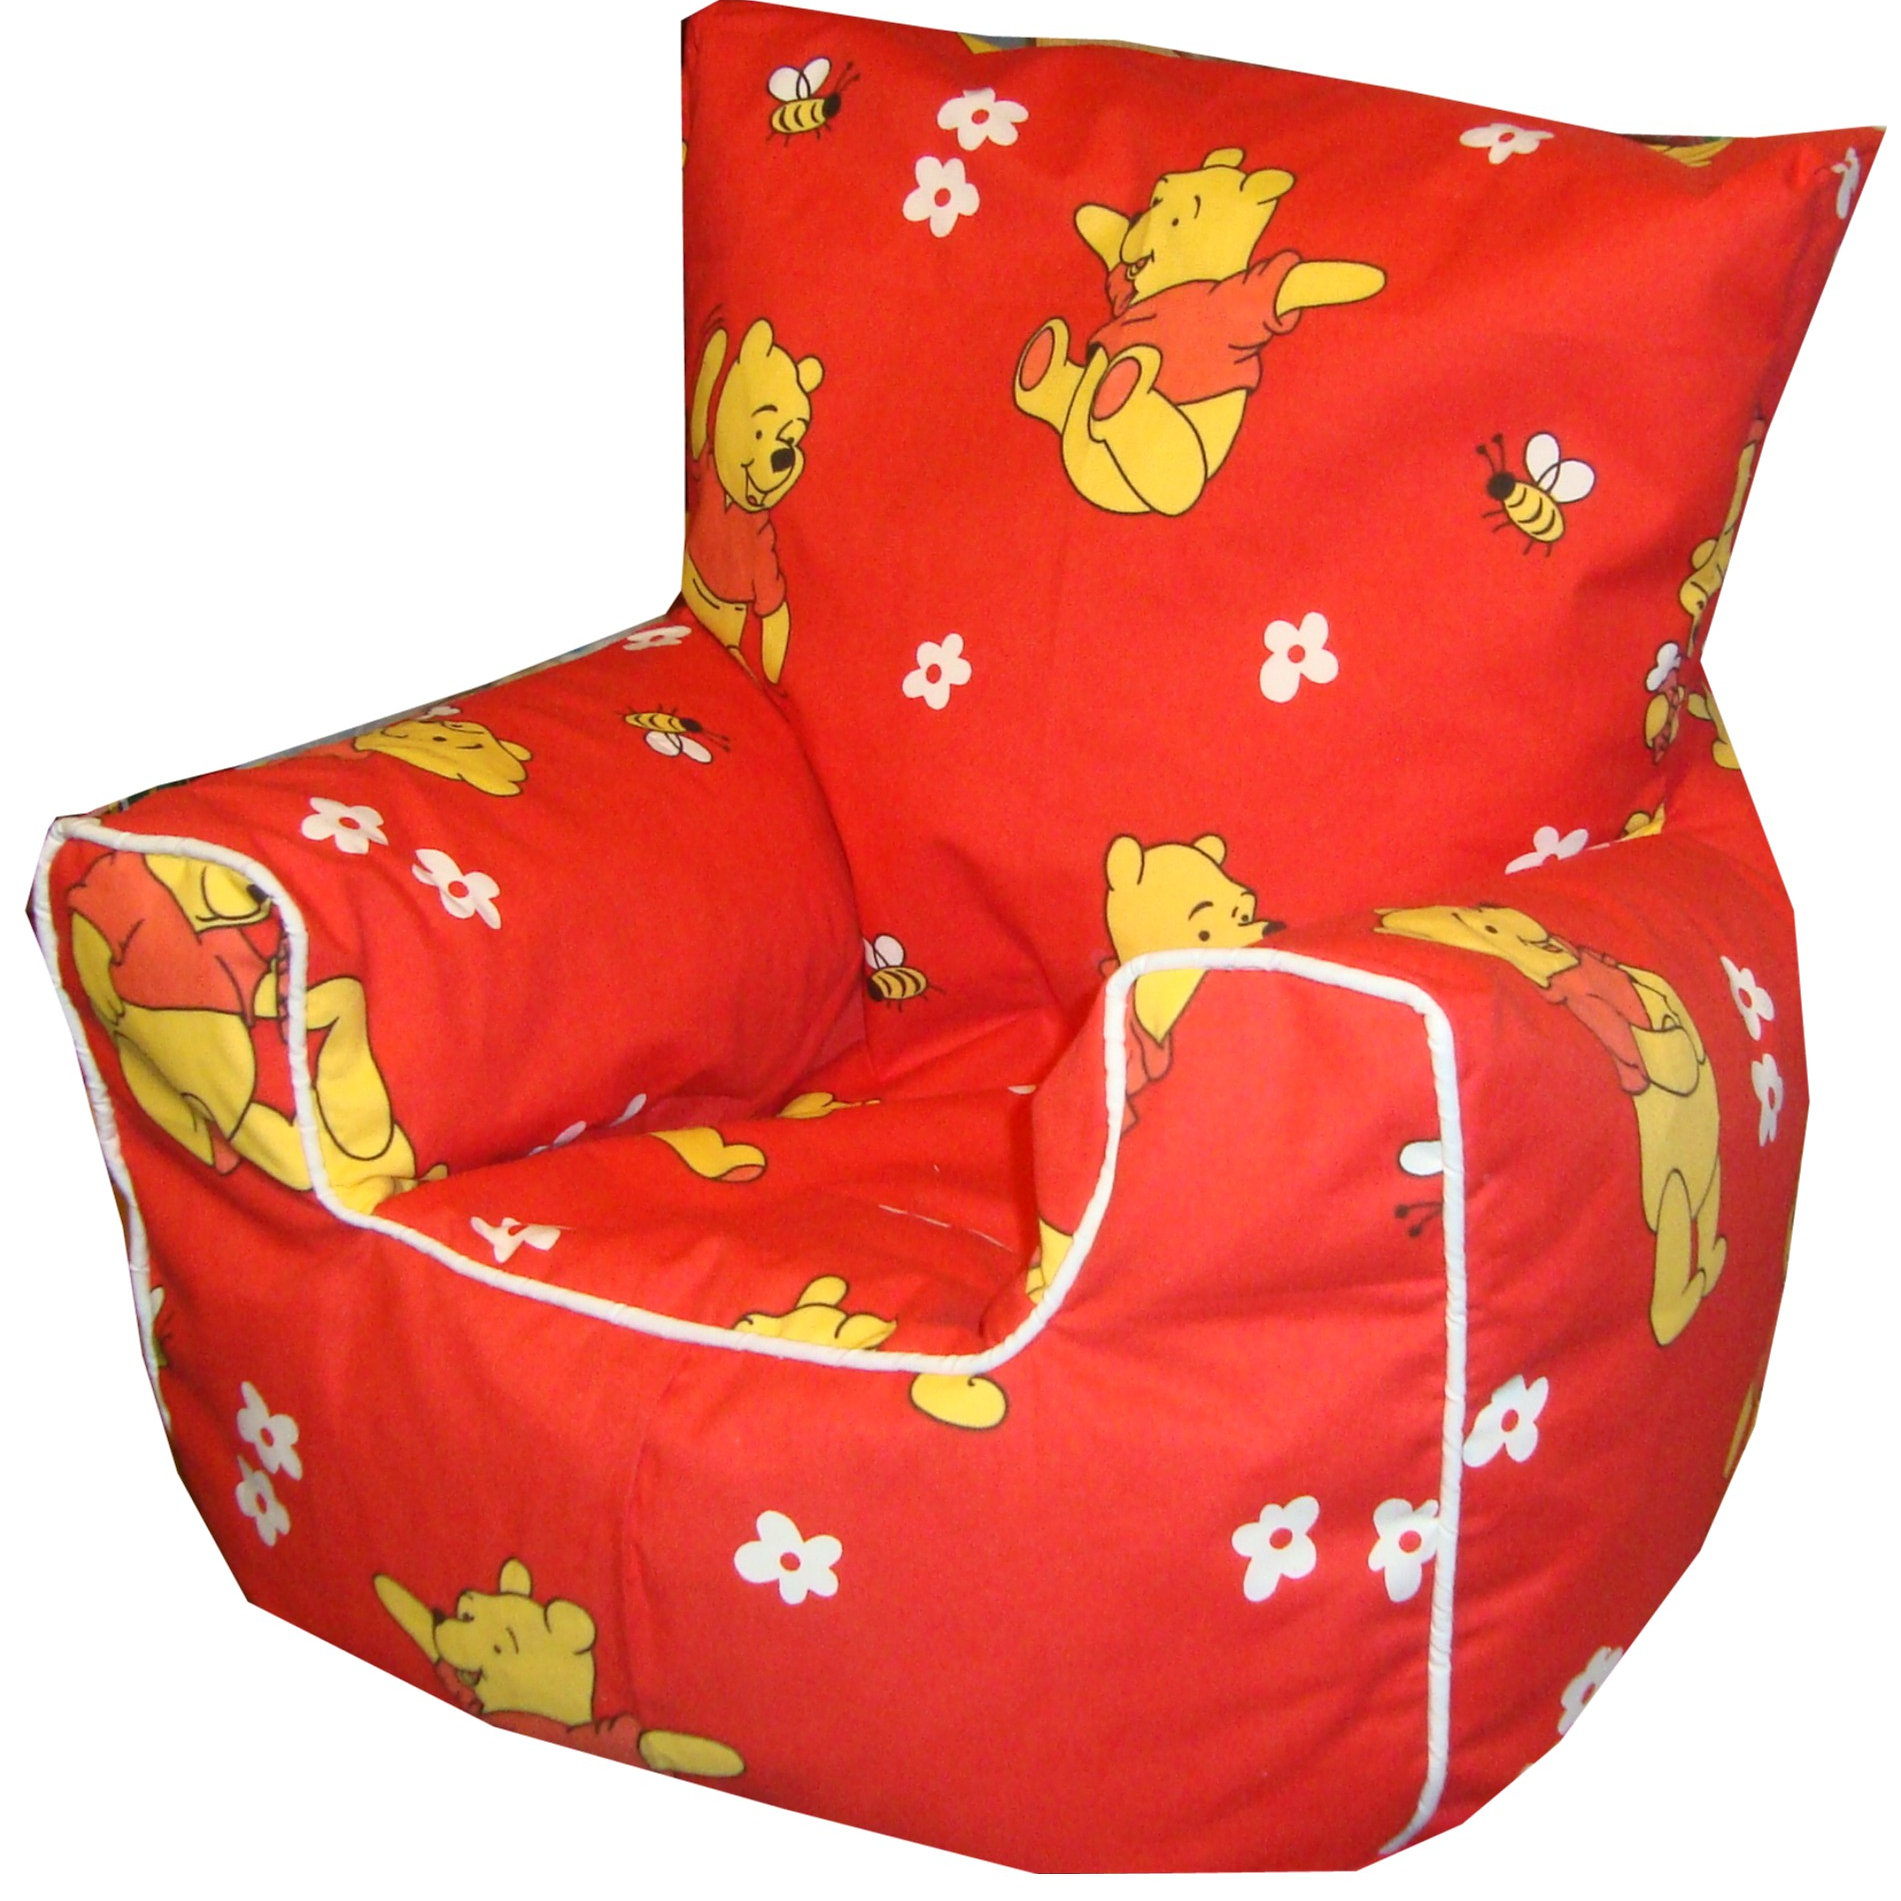 fy Creations Kids Bean Bags Made in England